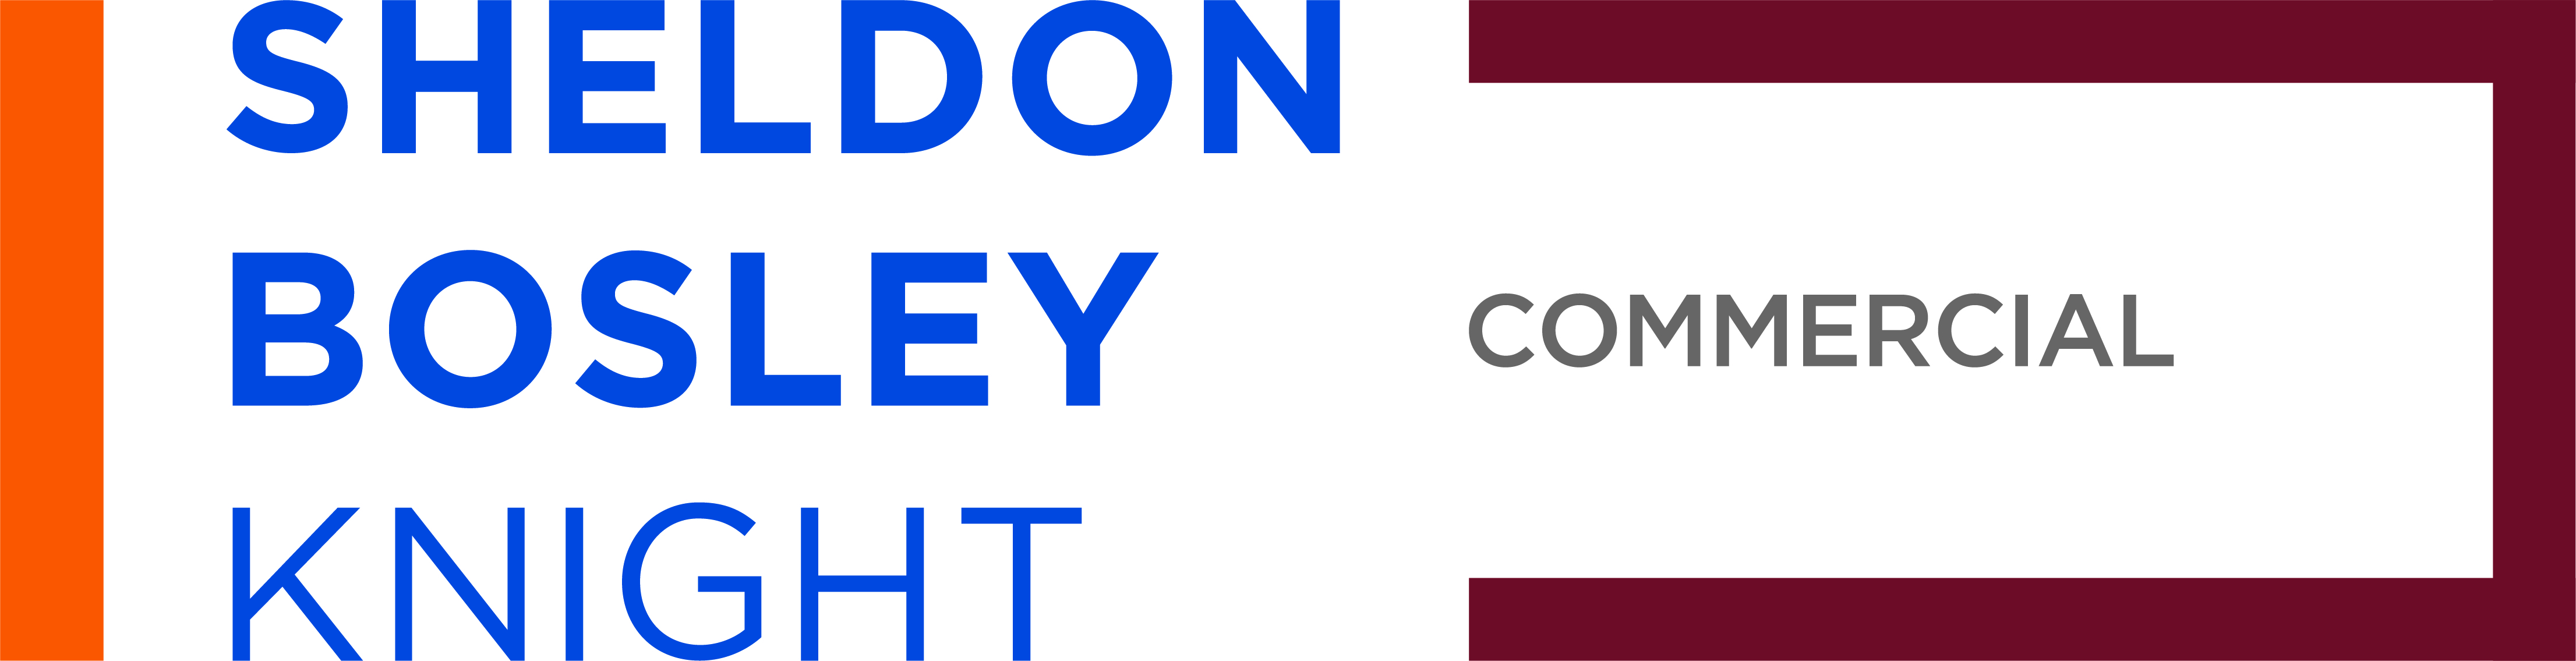 Sheldon Bosley Knight Commercial Property